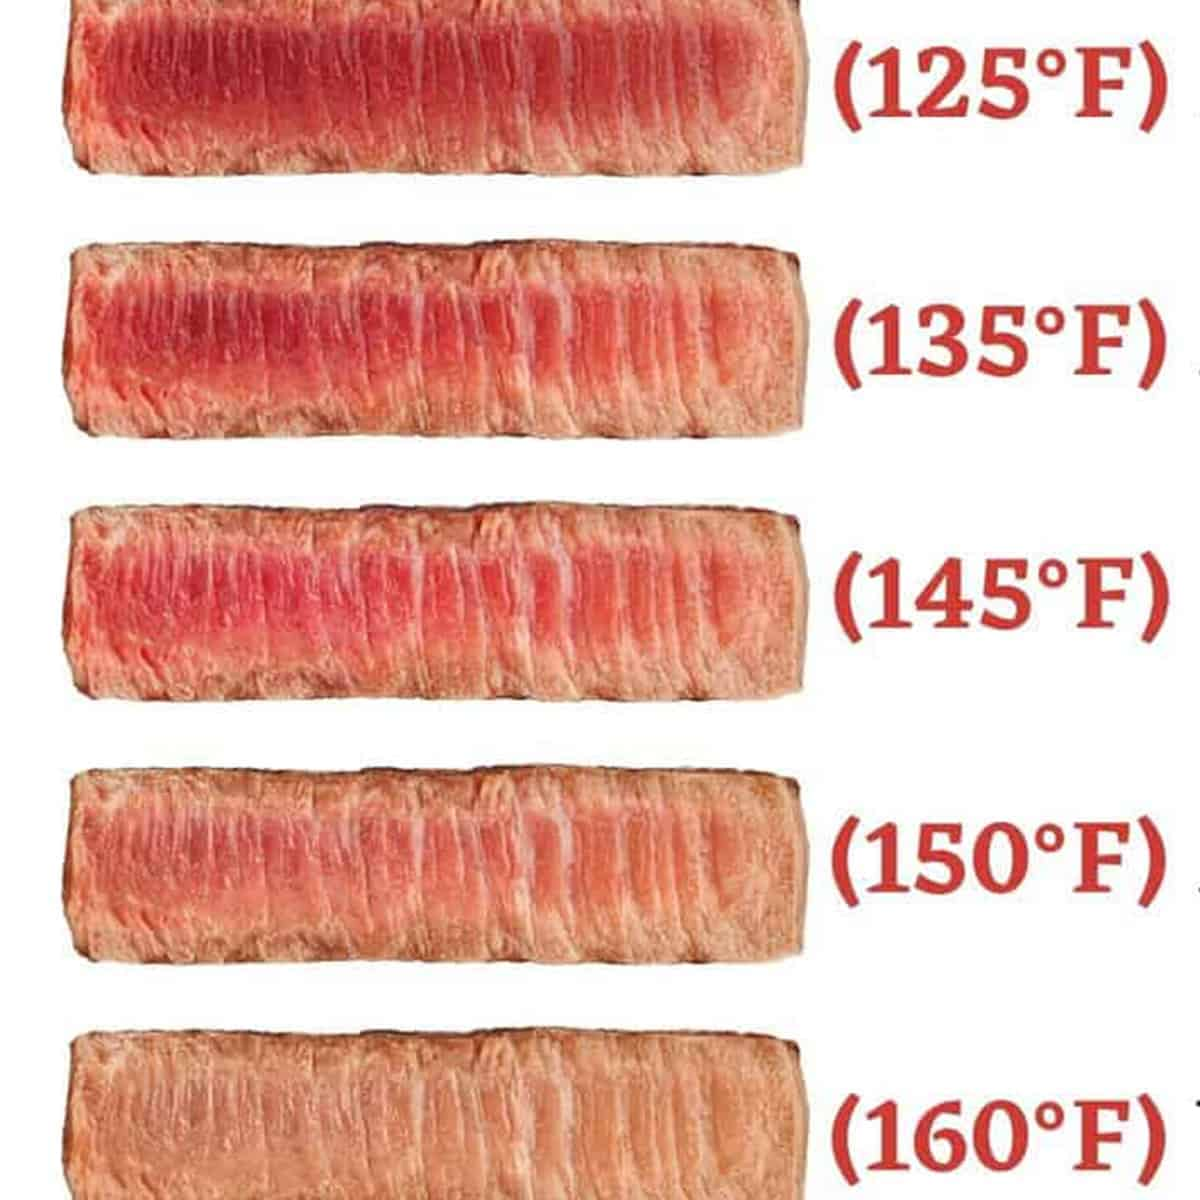 chart showing slices of beef with temperatures